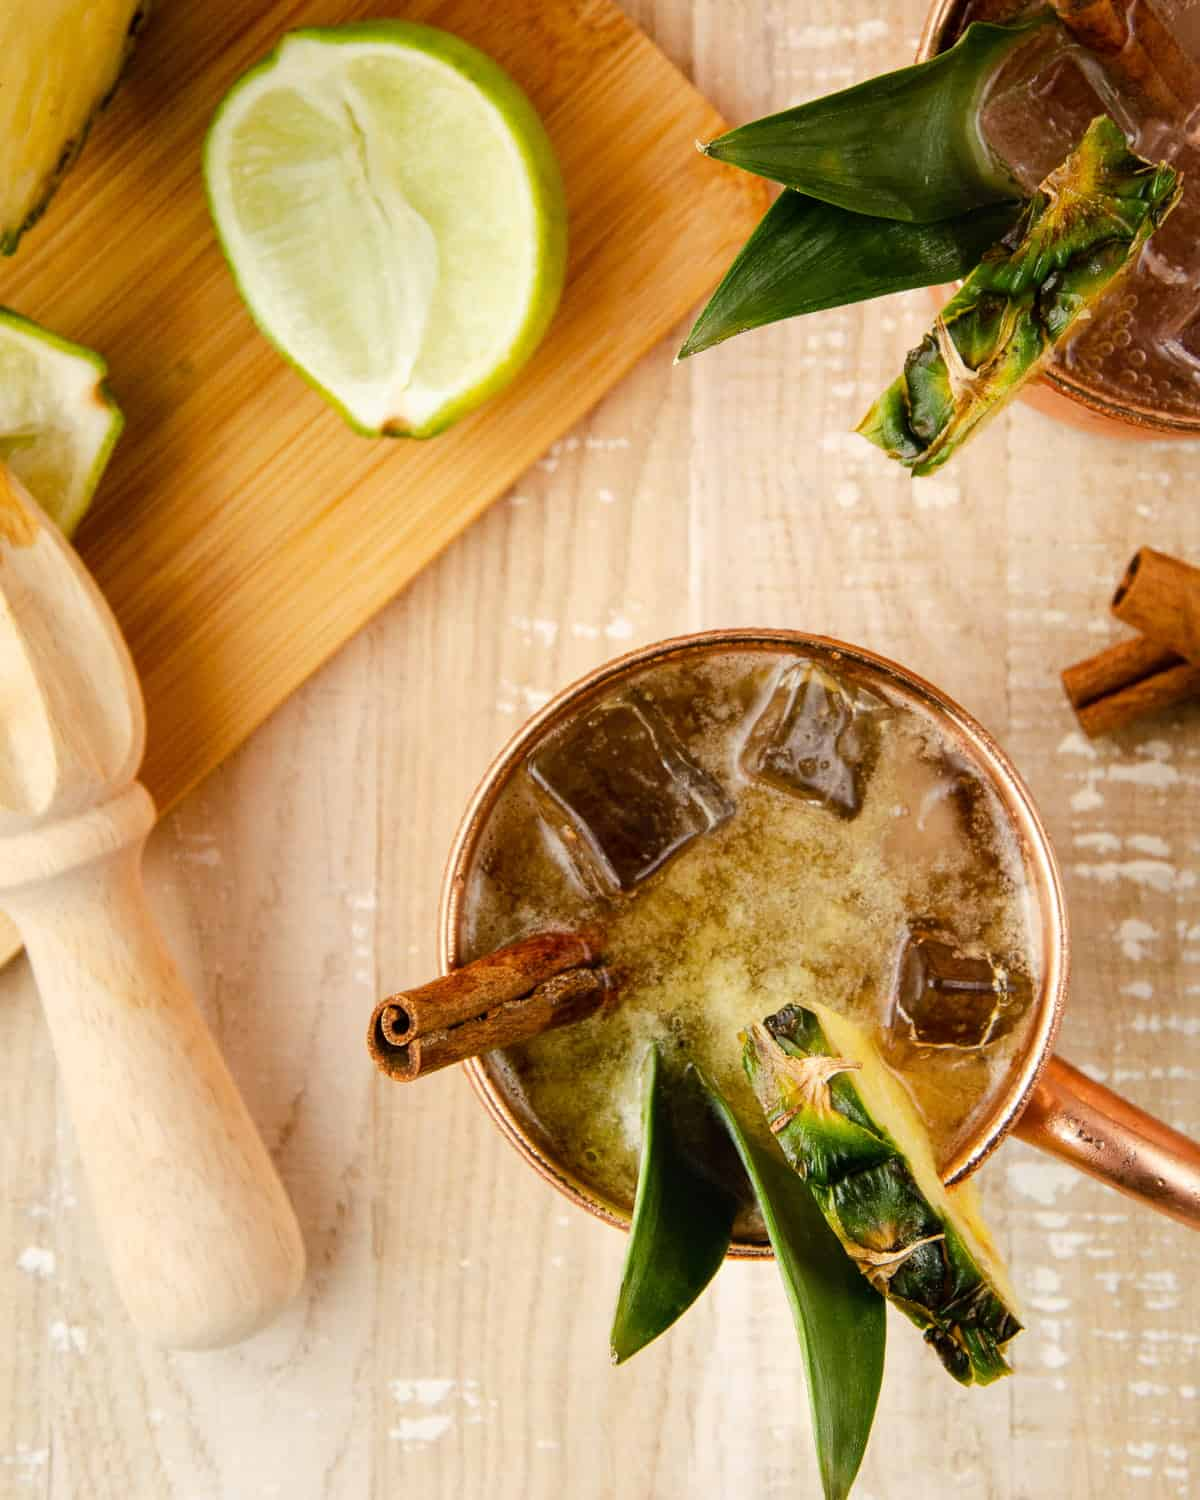 overhead view of a pineapple spiced rum moscow mule: a copper mug garnished with a pineapple wedge, two pineapple leaves and a cinnamon stick. to the side is a lime wedge and a lime squeezer on top of a cutting board.